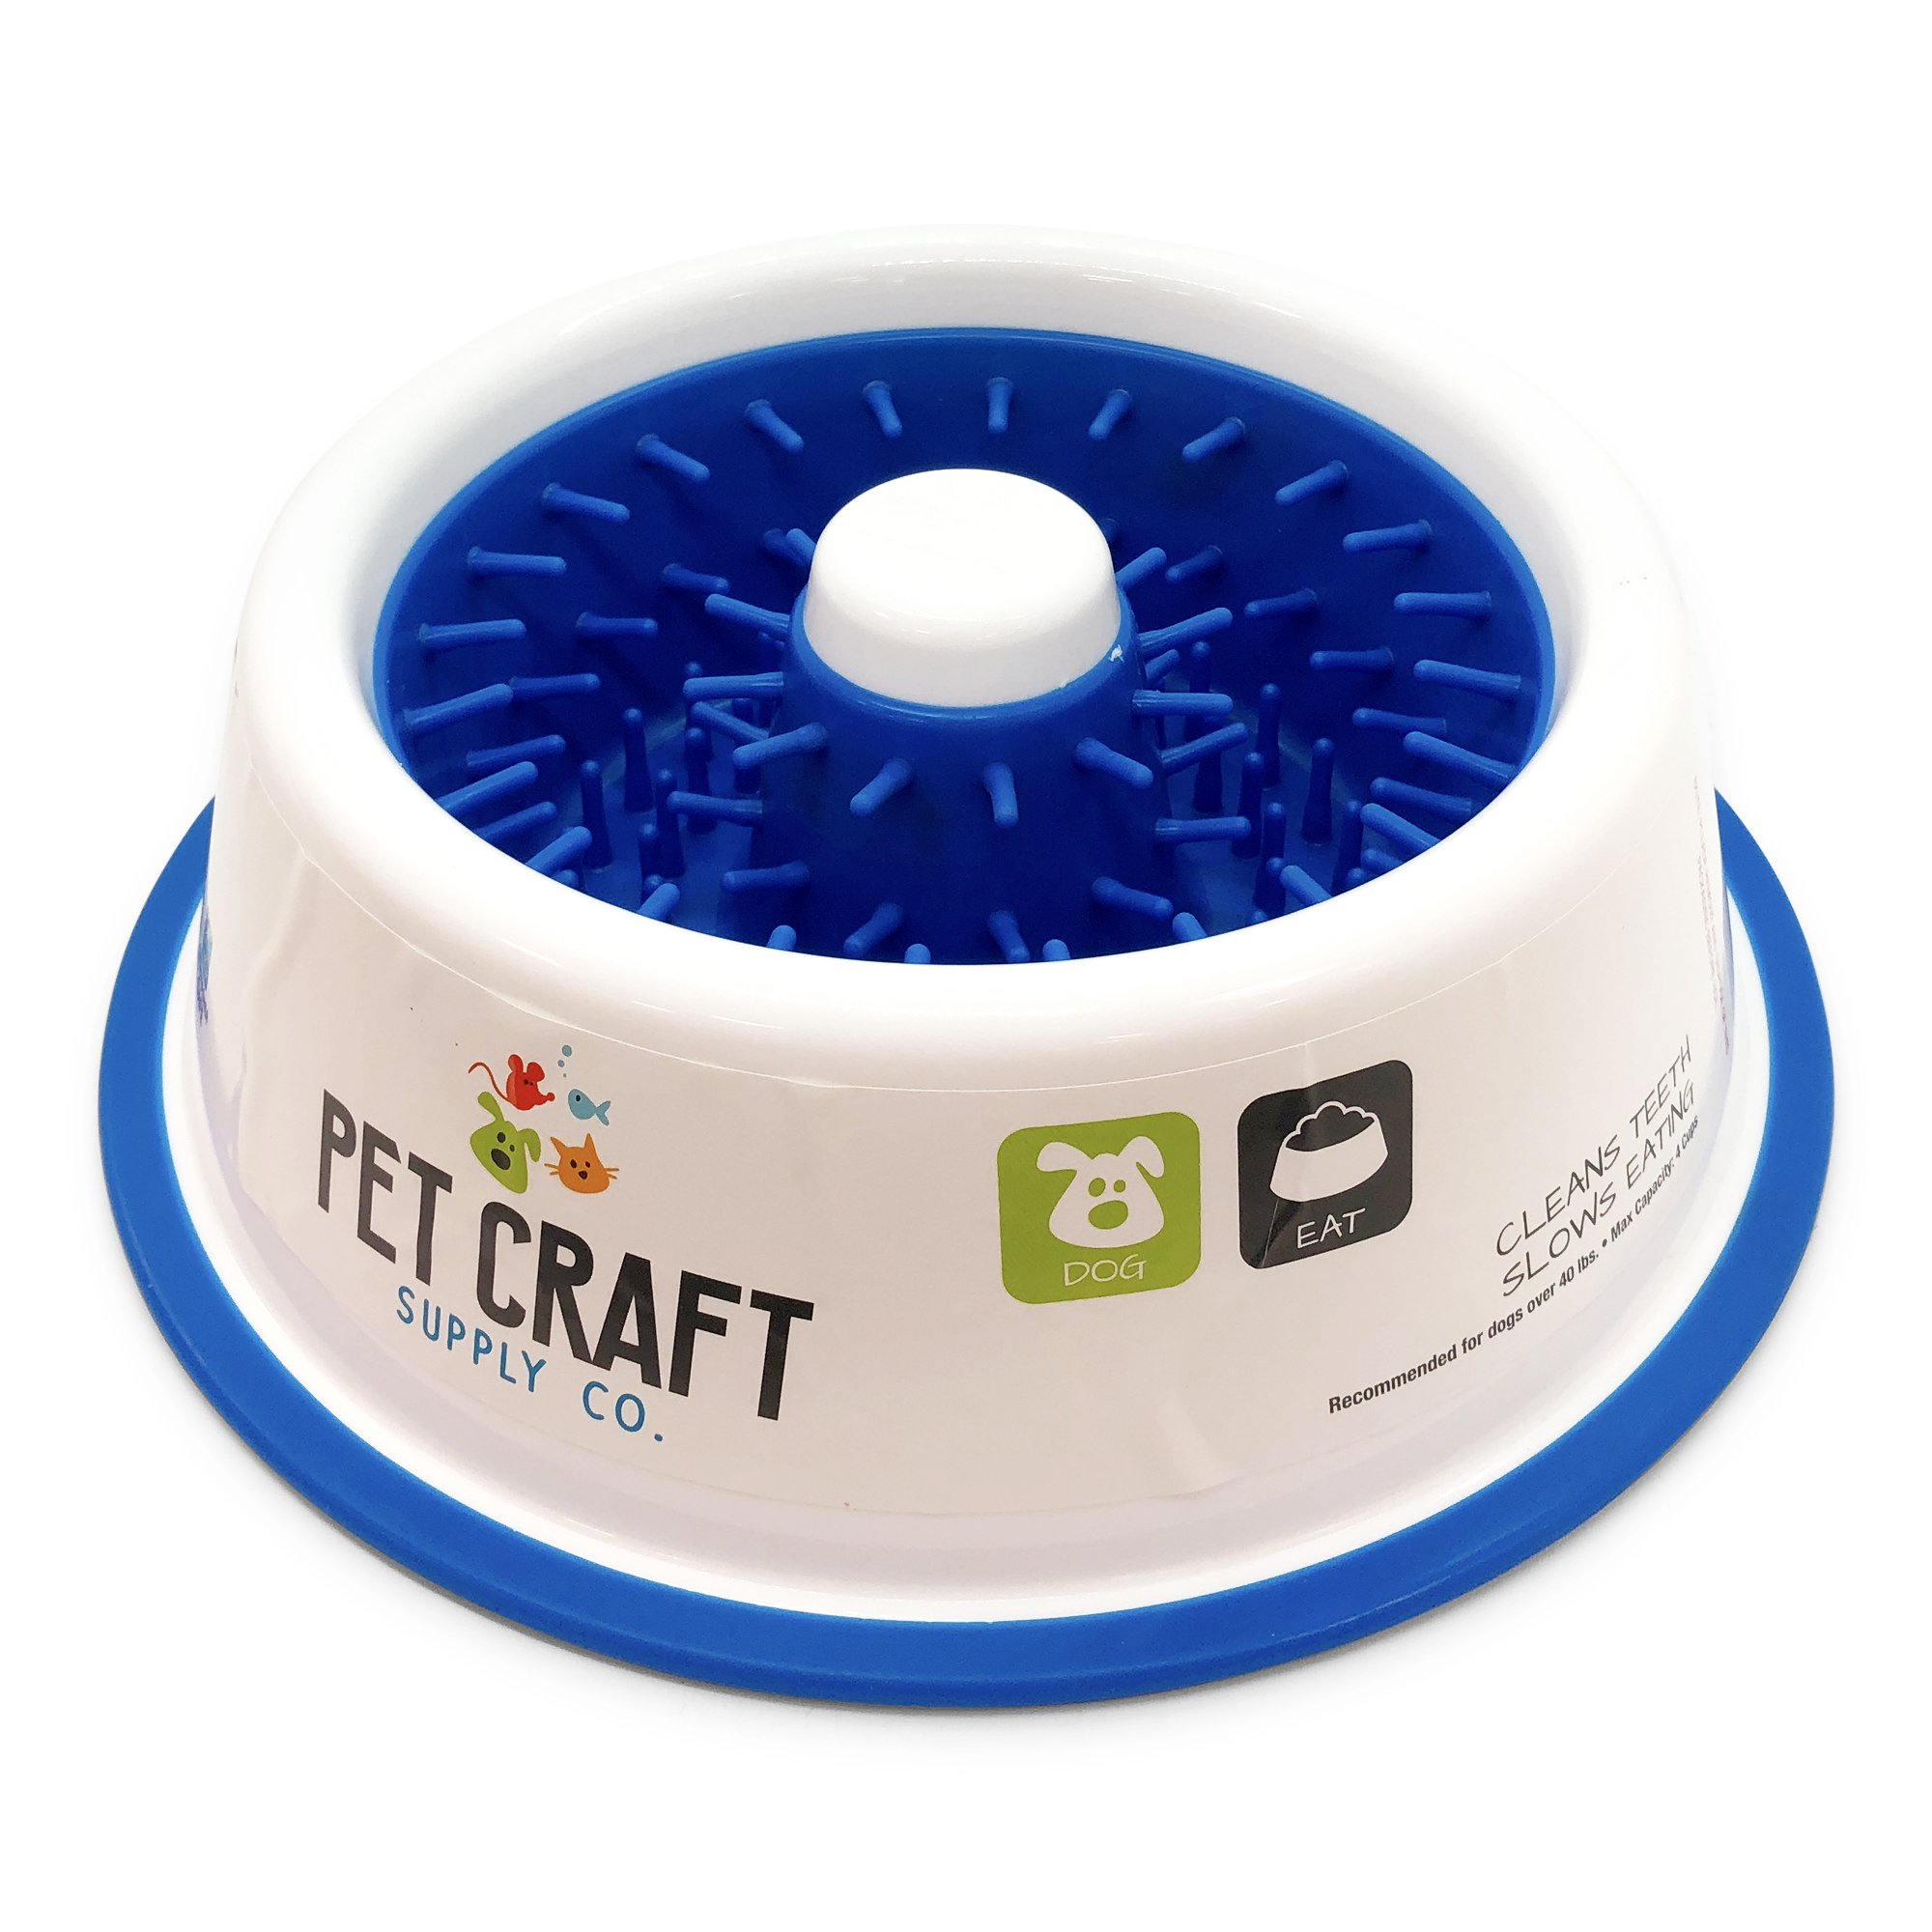 Pet Craft Supply 2225 Teeth Cleaning Slow Feeding Dog Bowls, Large